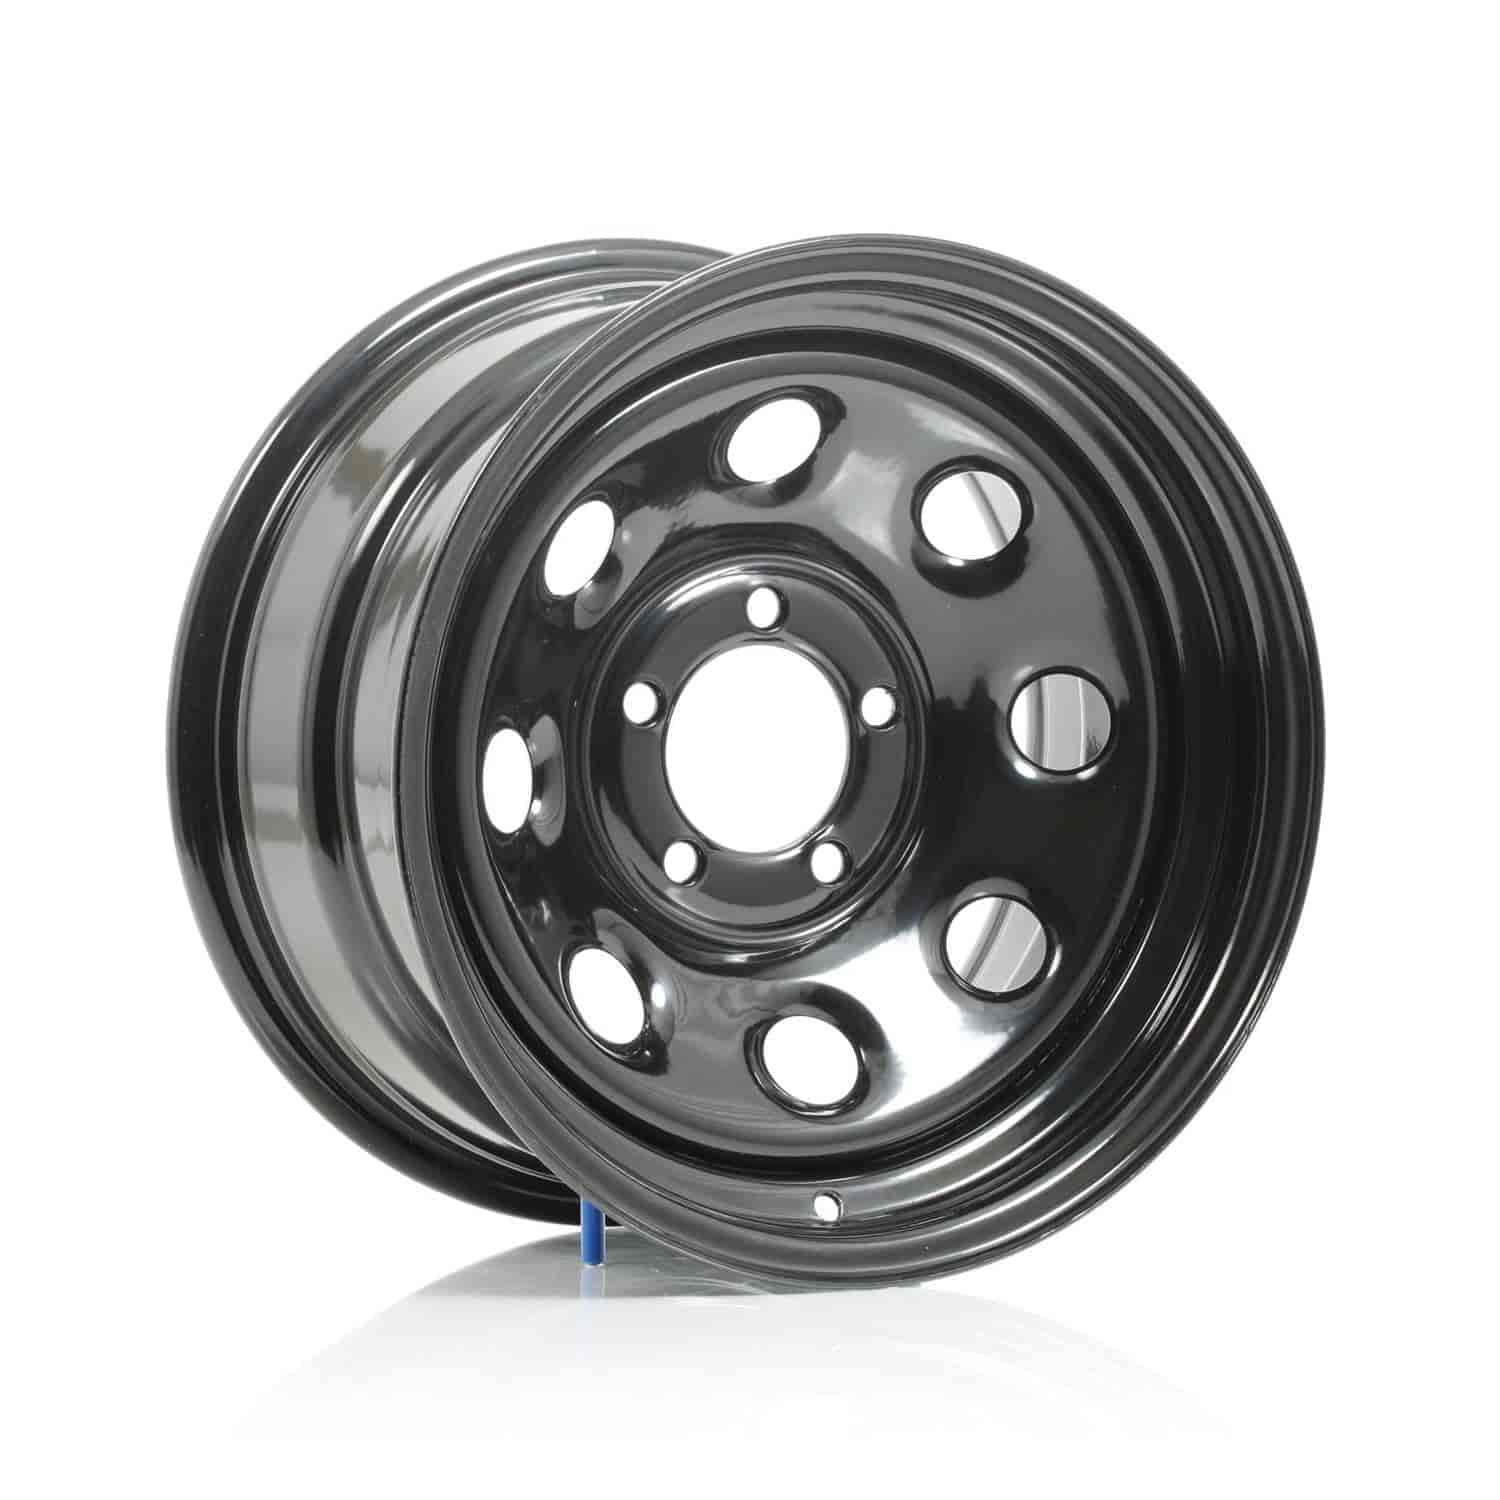 Cragar 3975812P - Cragar Black Soft 8 Wheels